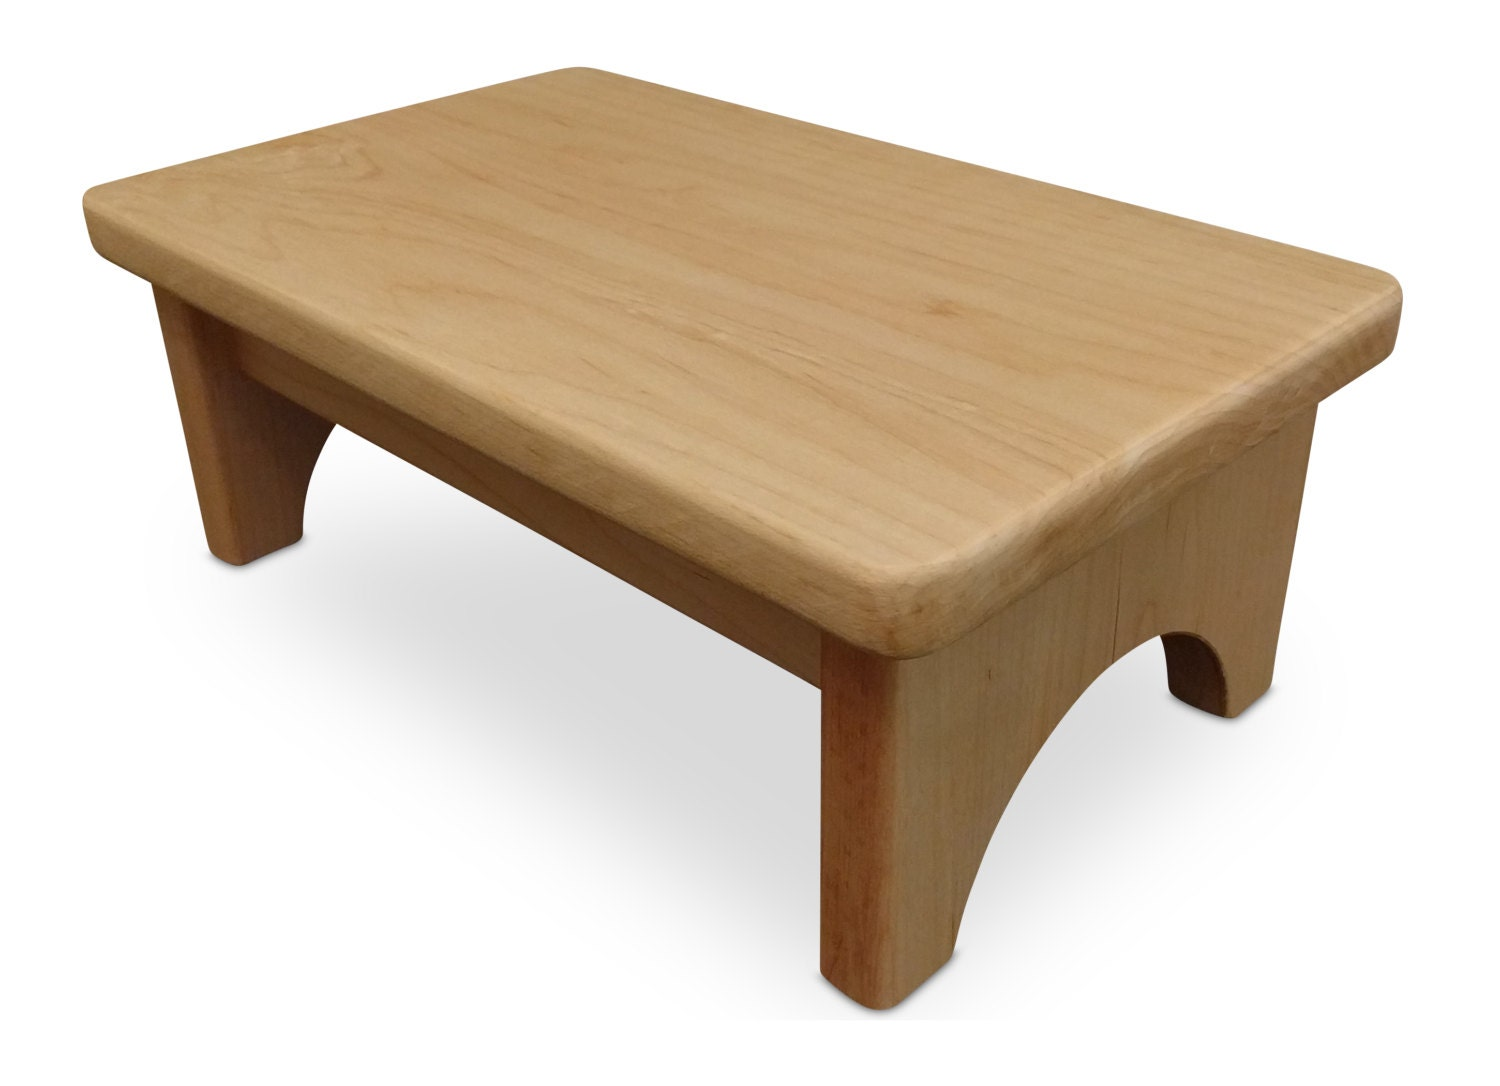 Natural Wood Stool Skogsta Stool Ikea Stool Tam Tam